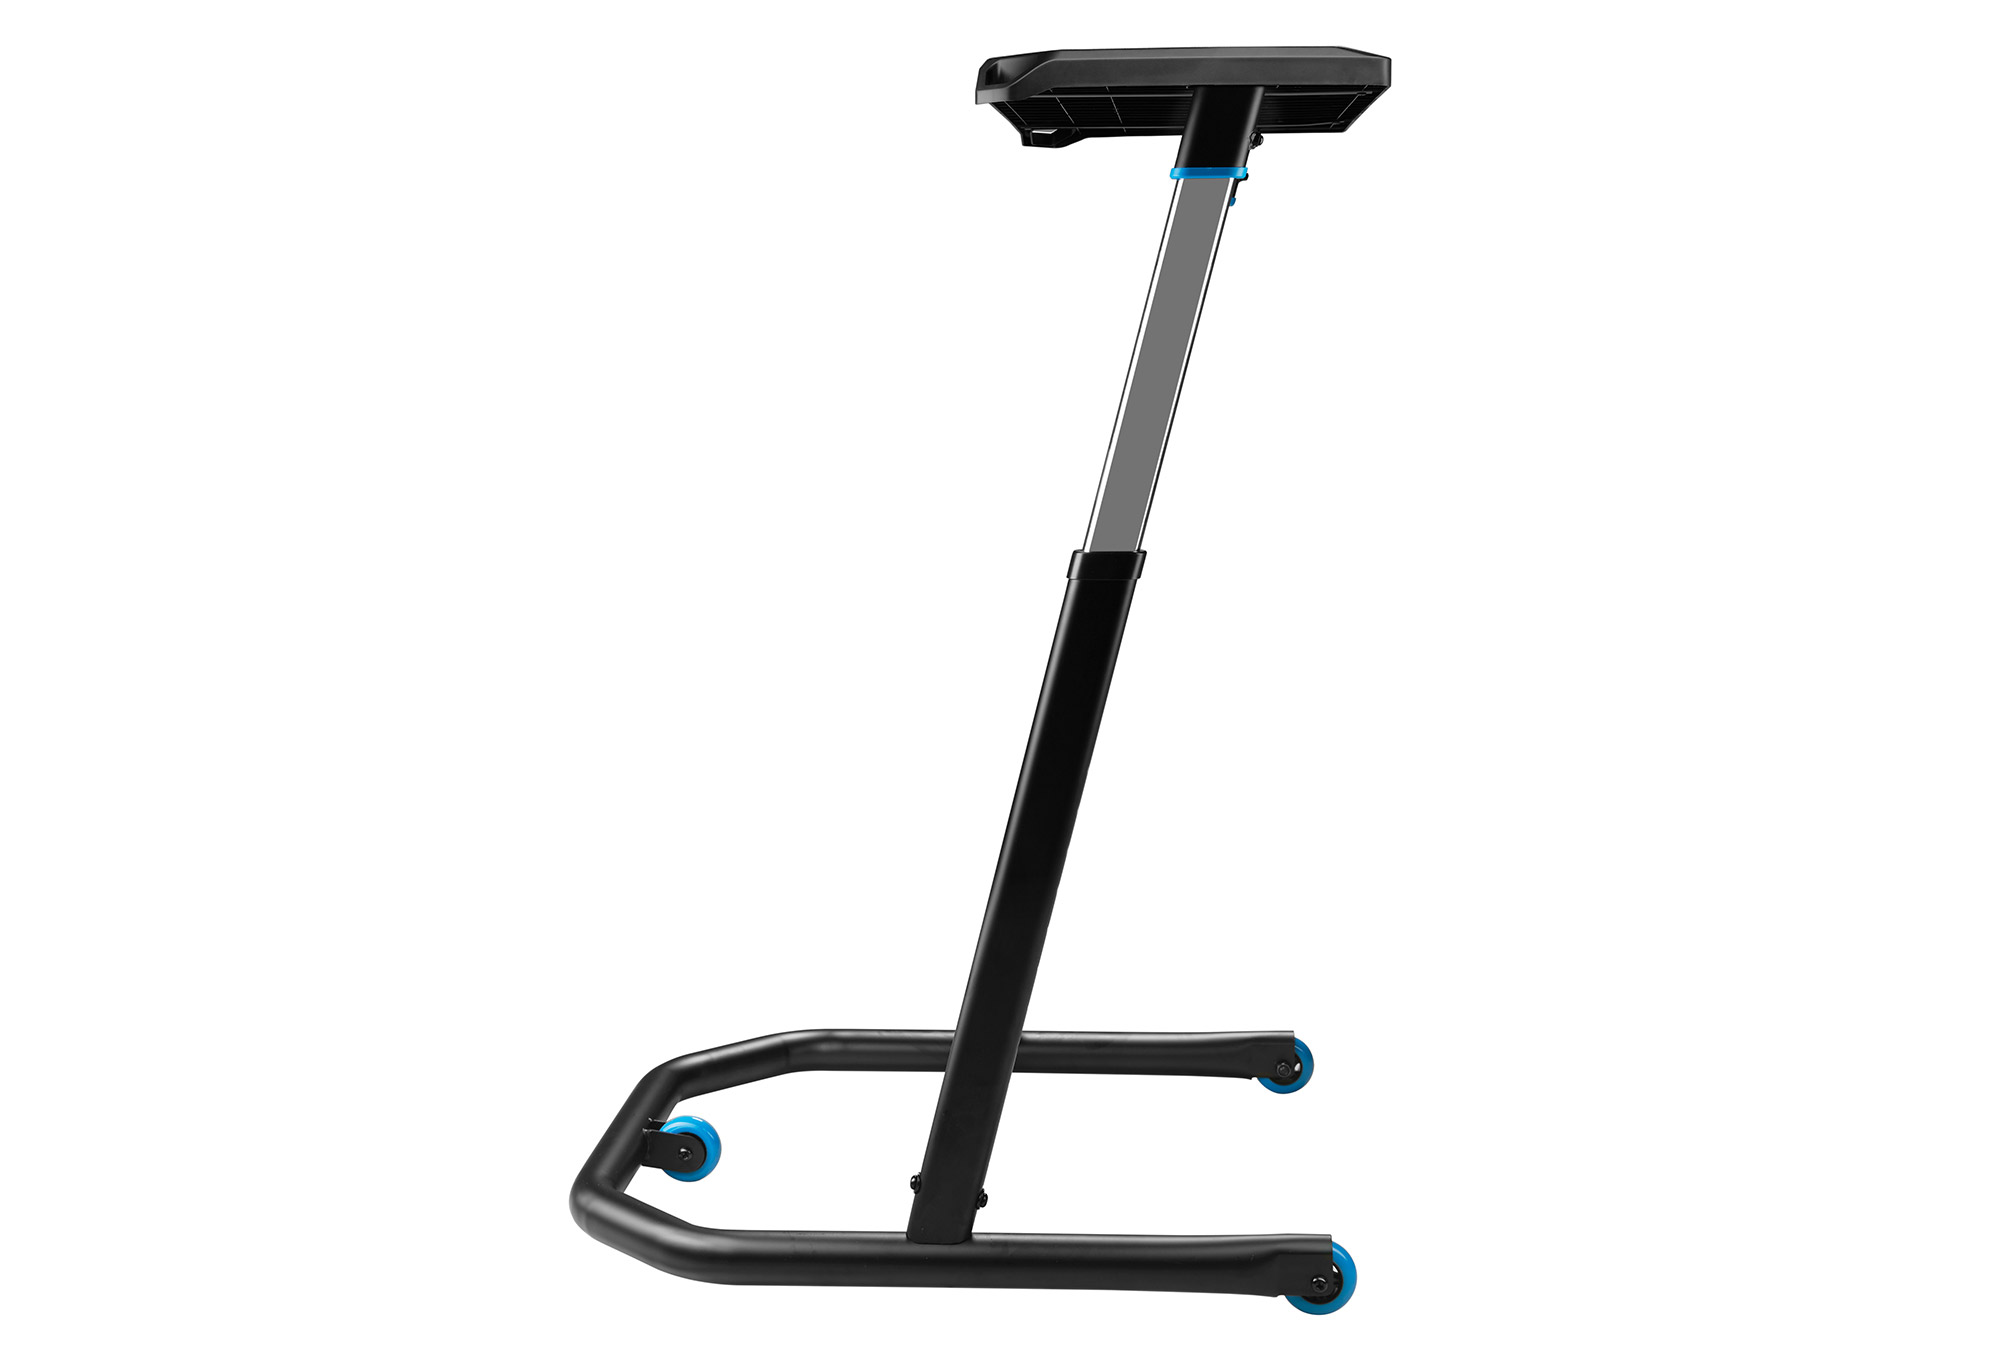 Wahoo KICKR Multi-Purpose Adjustable Height Desk for Indoor Cycling and Standing